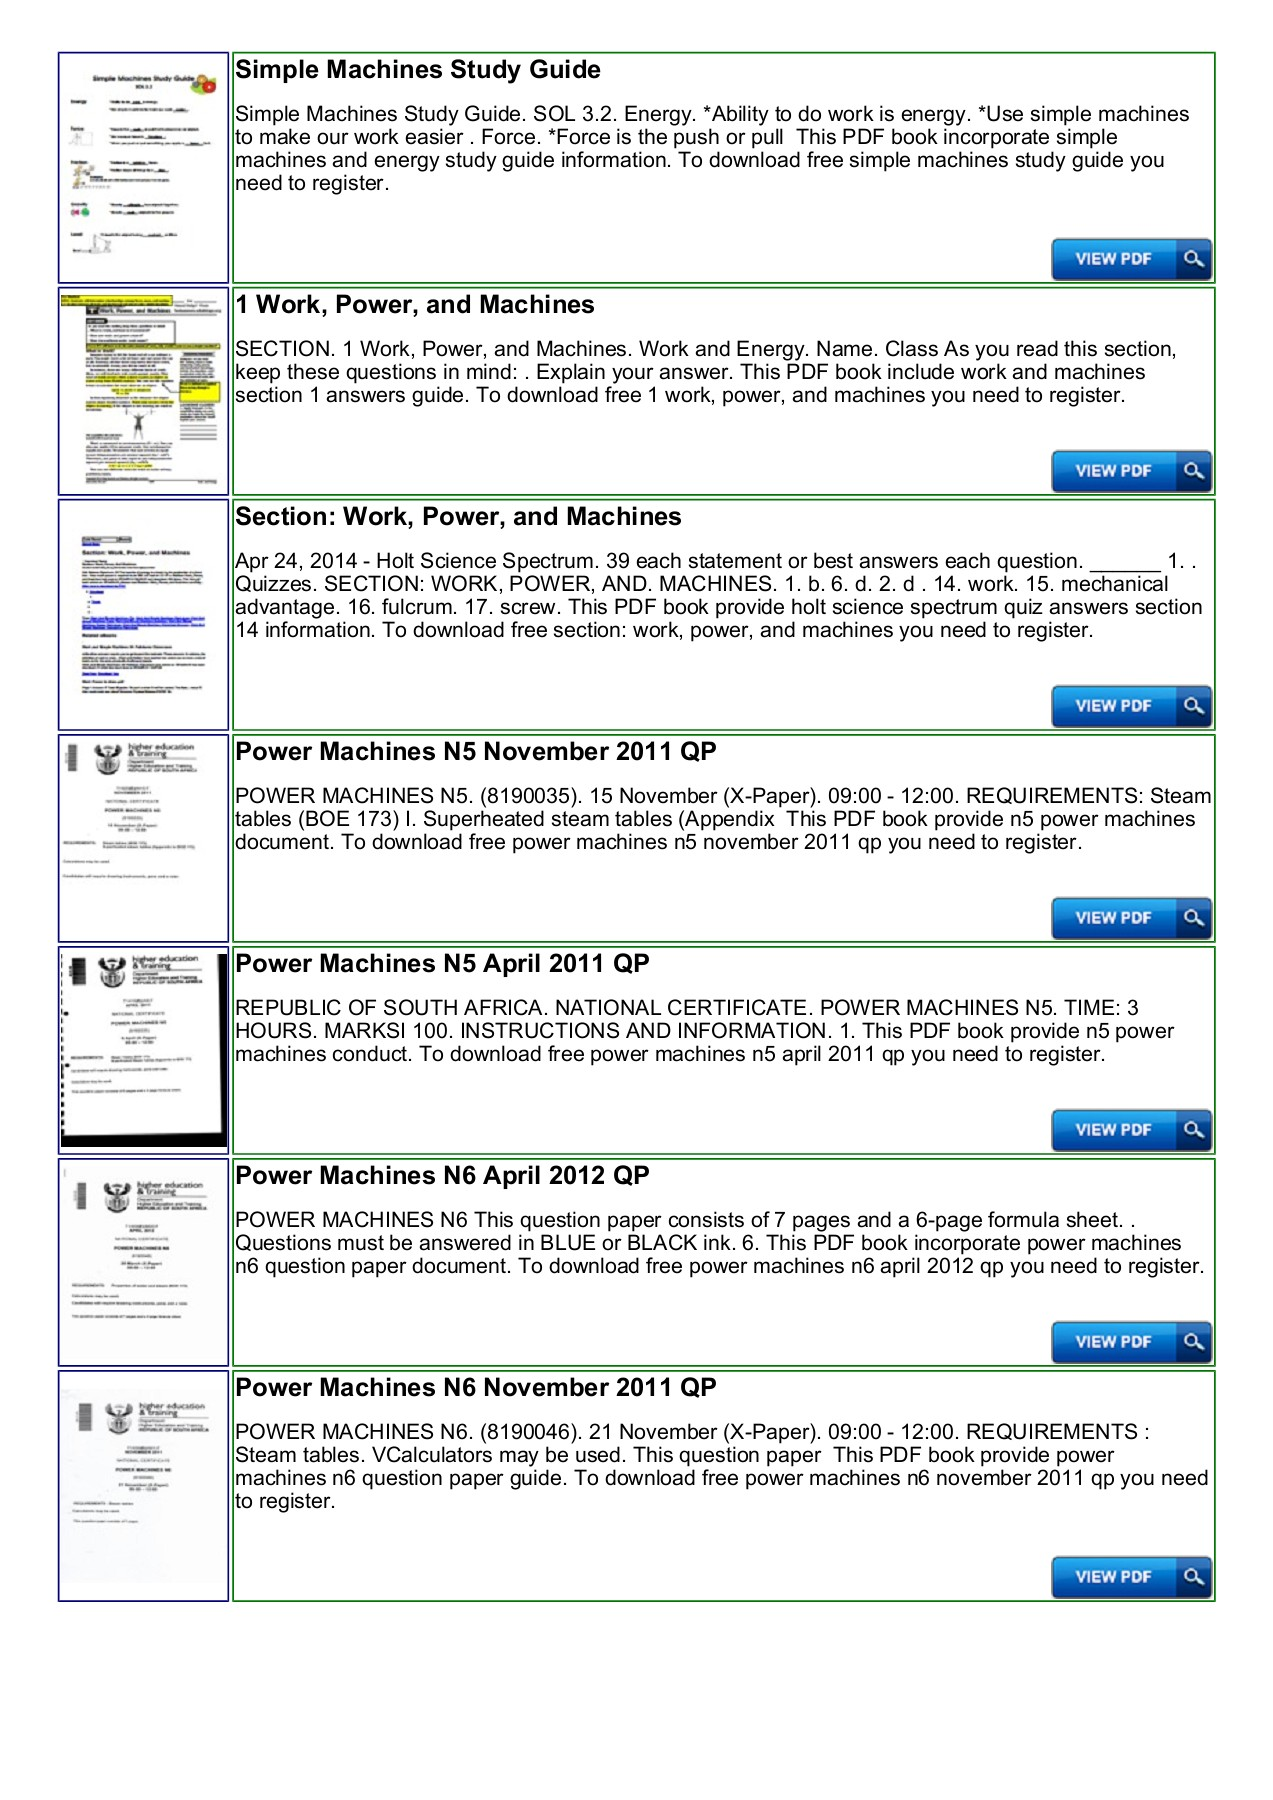 Power Machines N5 Study Guide - nocRead Com Pages 1 - 4 - Text